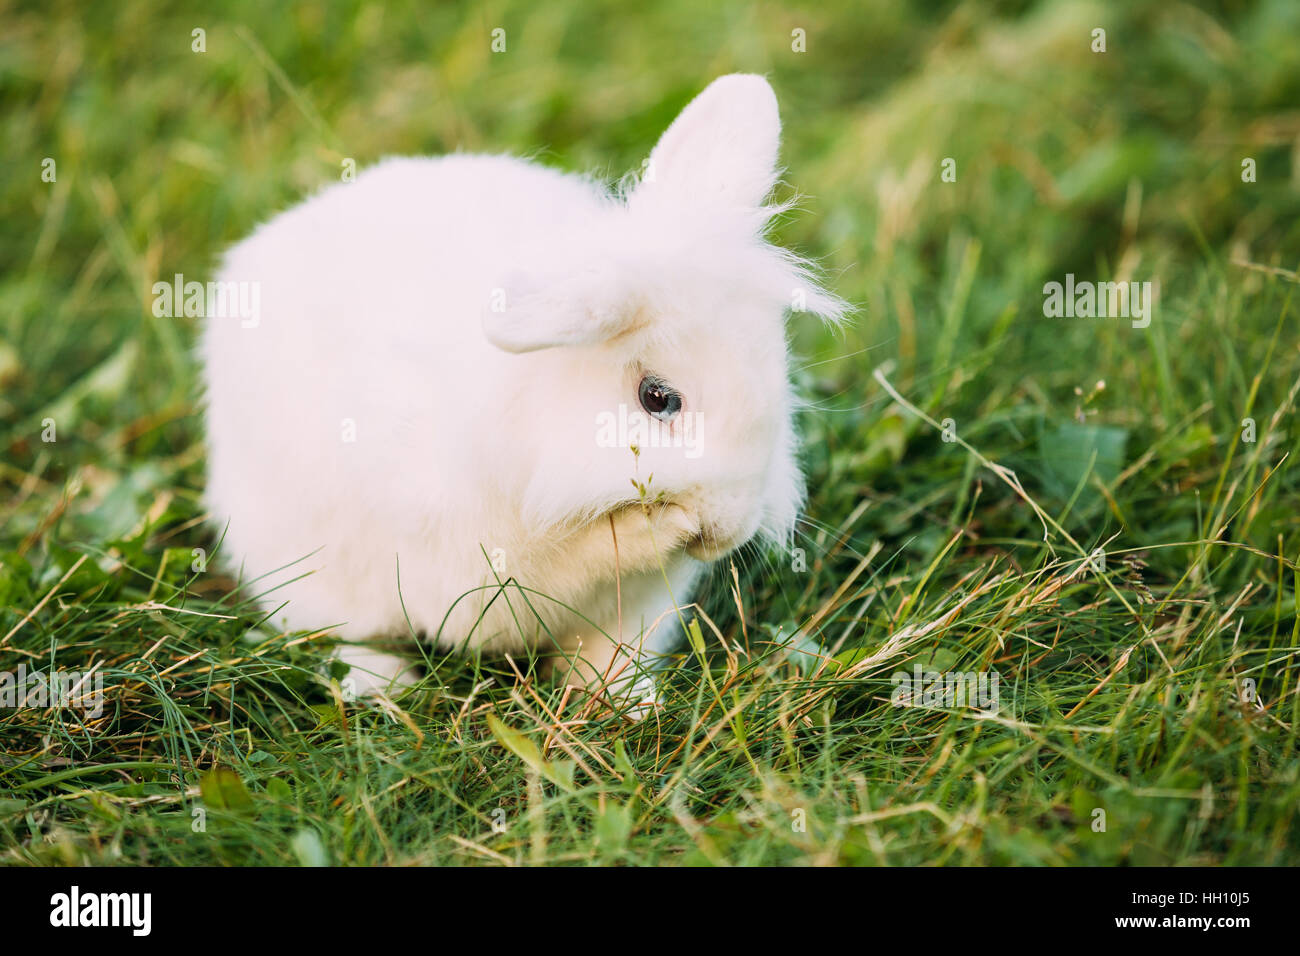 Close Profile Of Cute Dwarf Lop-Eared Decorative Miniature Snow-White Fluffy Rabbit Bunny Mixed Breed With Blue - Stock Image